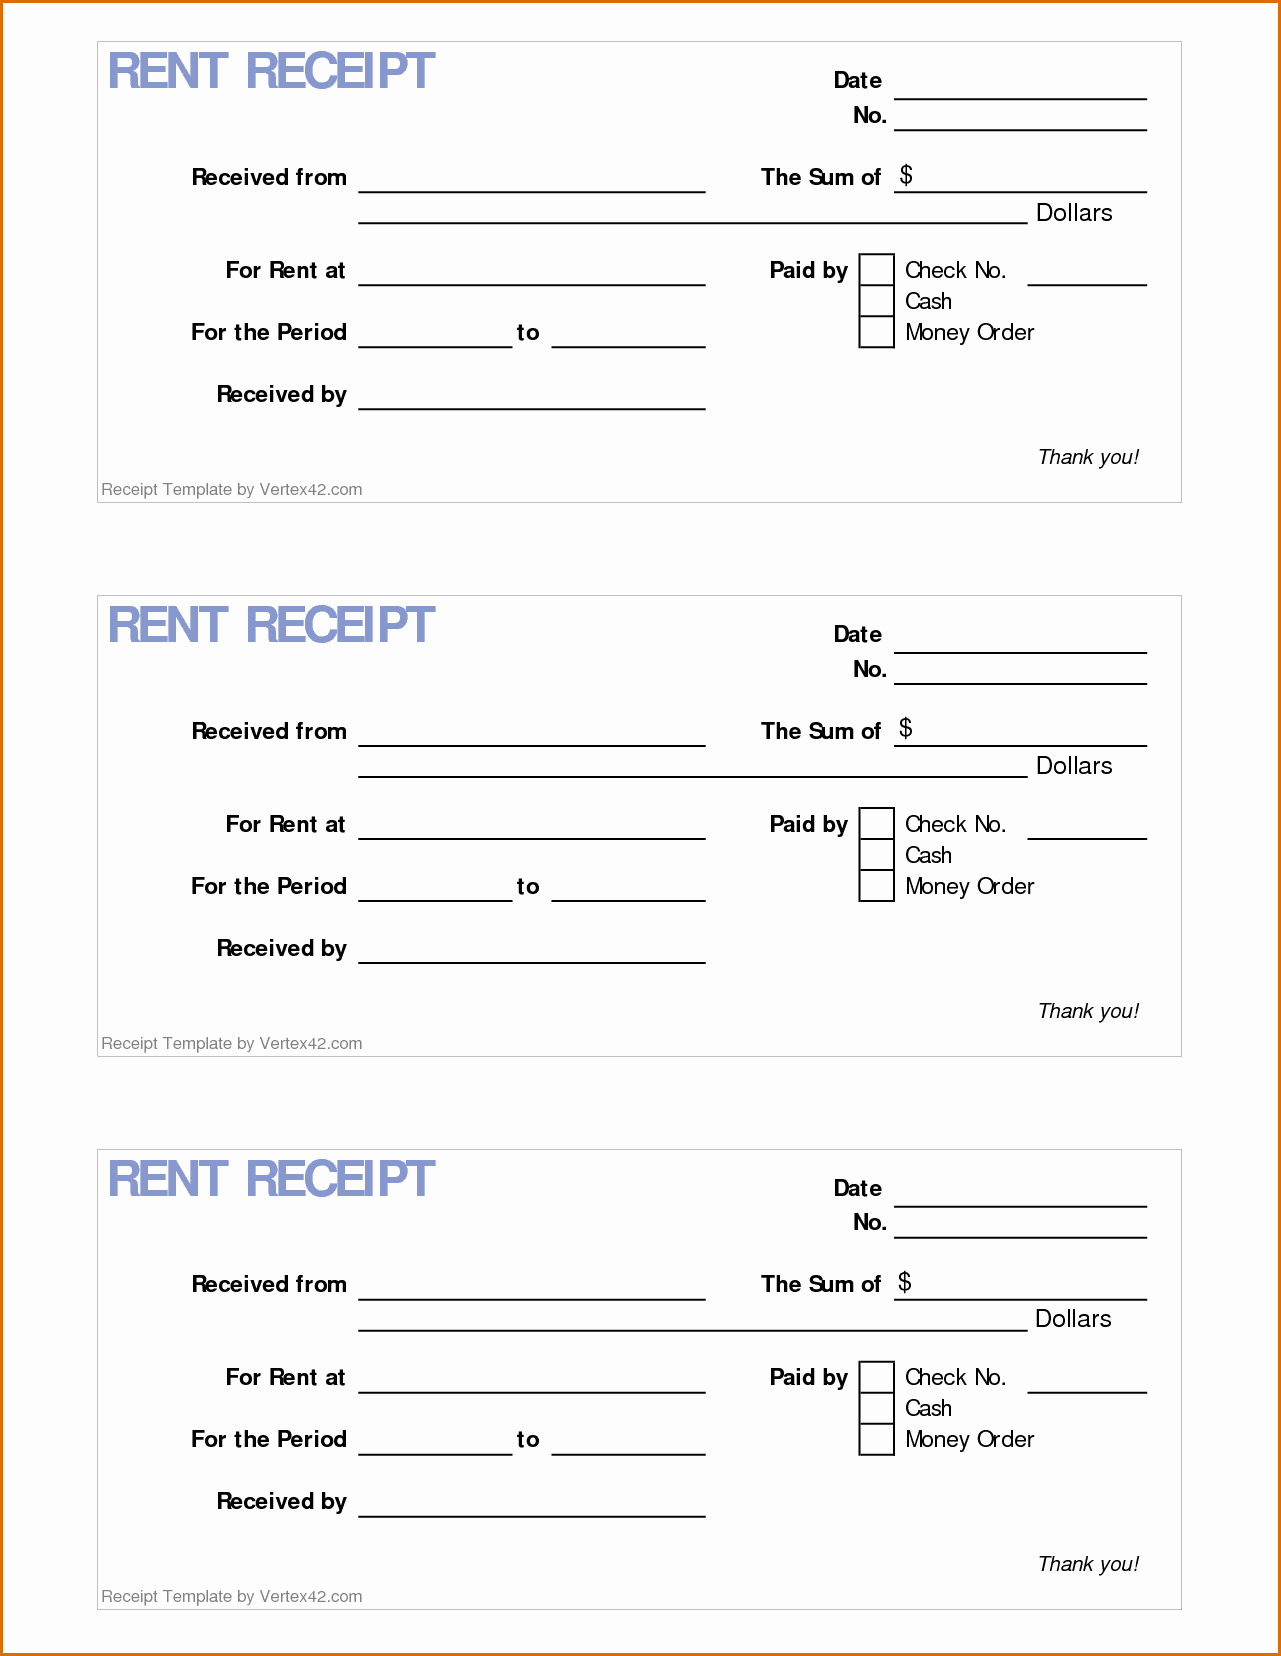 Rent Payment Receipt Template Inspirational 4 Printable Rent Receipt